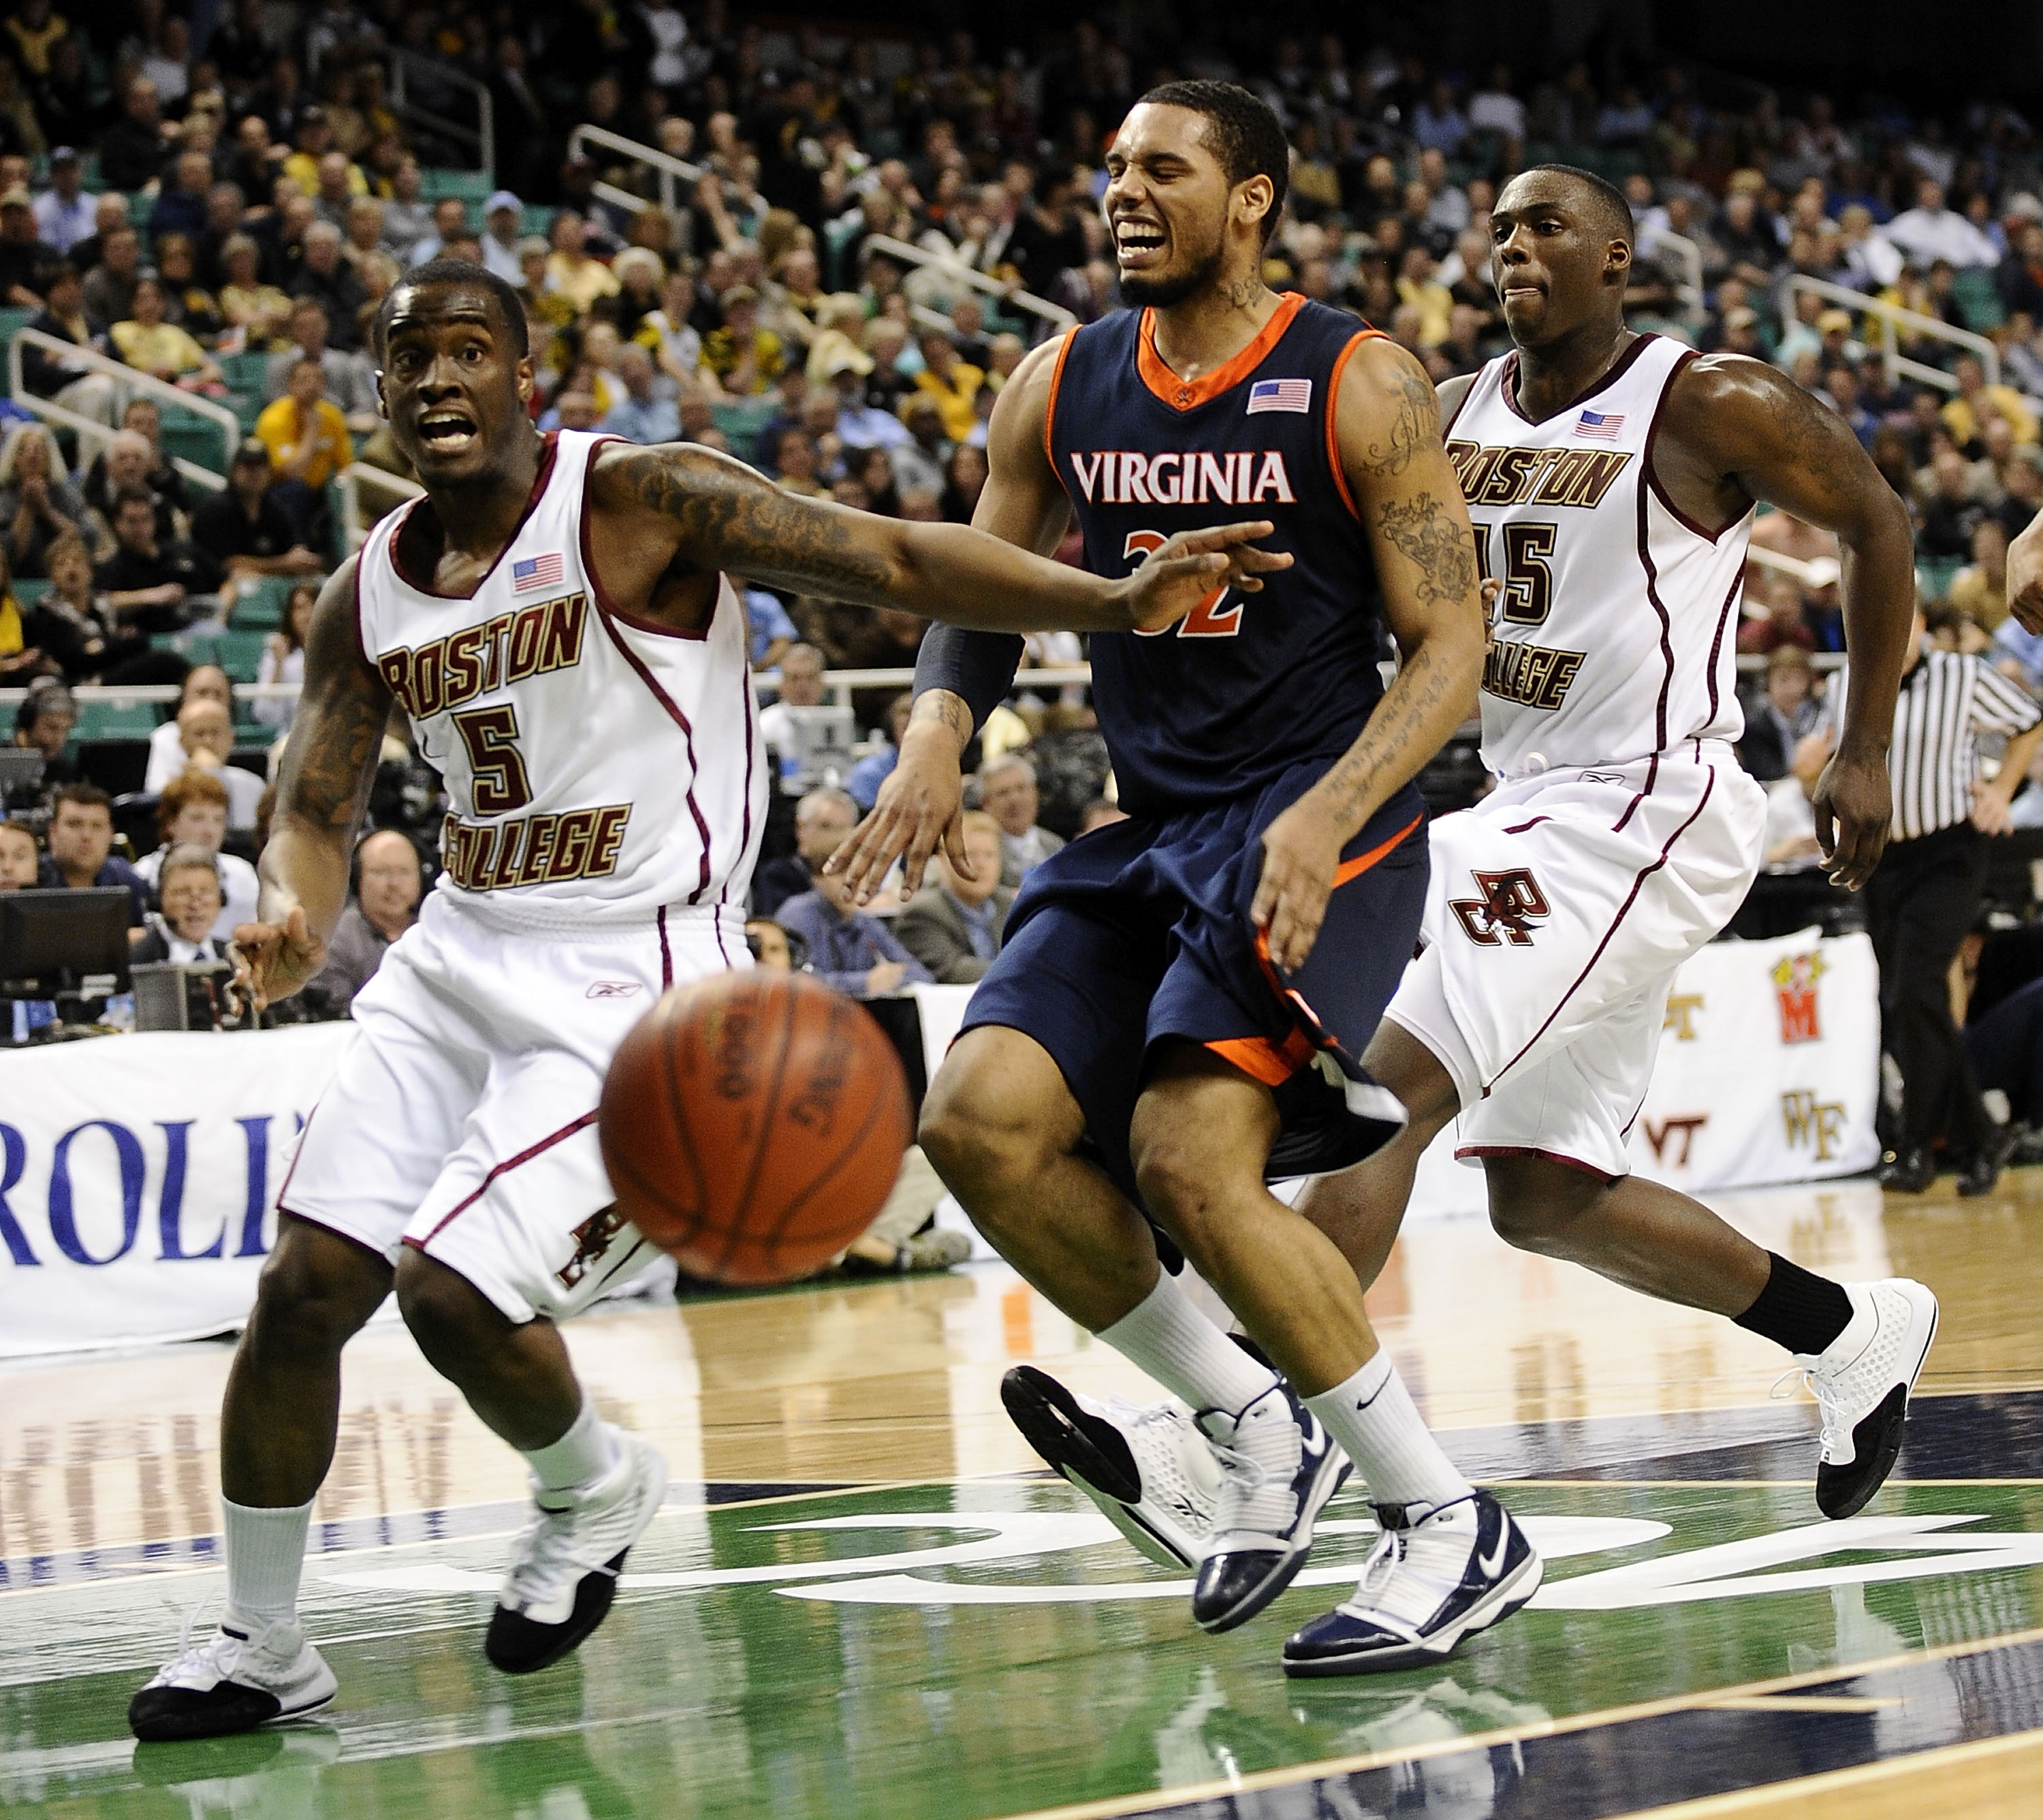 GREENSBORO, NC - MARCH 11:  Biko Paris #5 and Cortney Dunn #55 of the Boston College Eagles chase Mike Scott #32 of the University of Virginia Cavaliers in their first round game in the 2010 ACC Men's Basketball Tournament at the Greensboro Coliseum on Ma